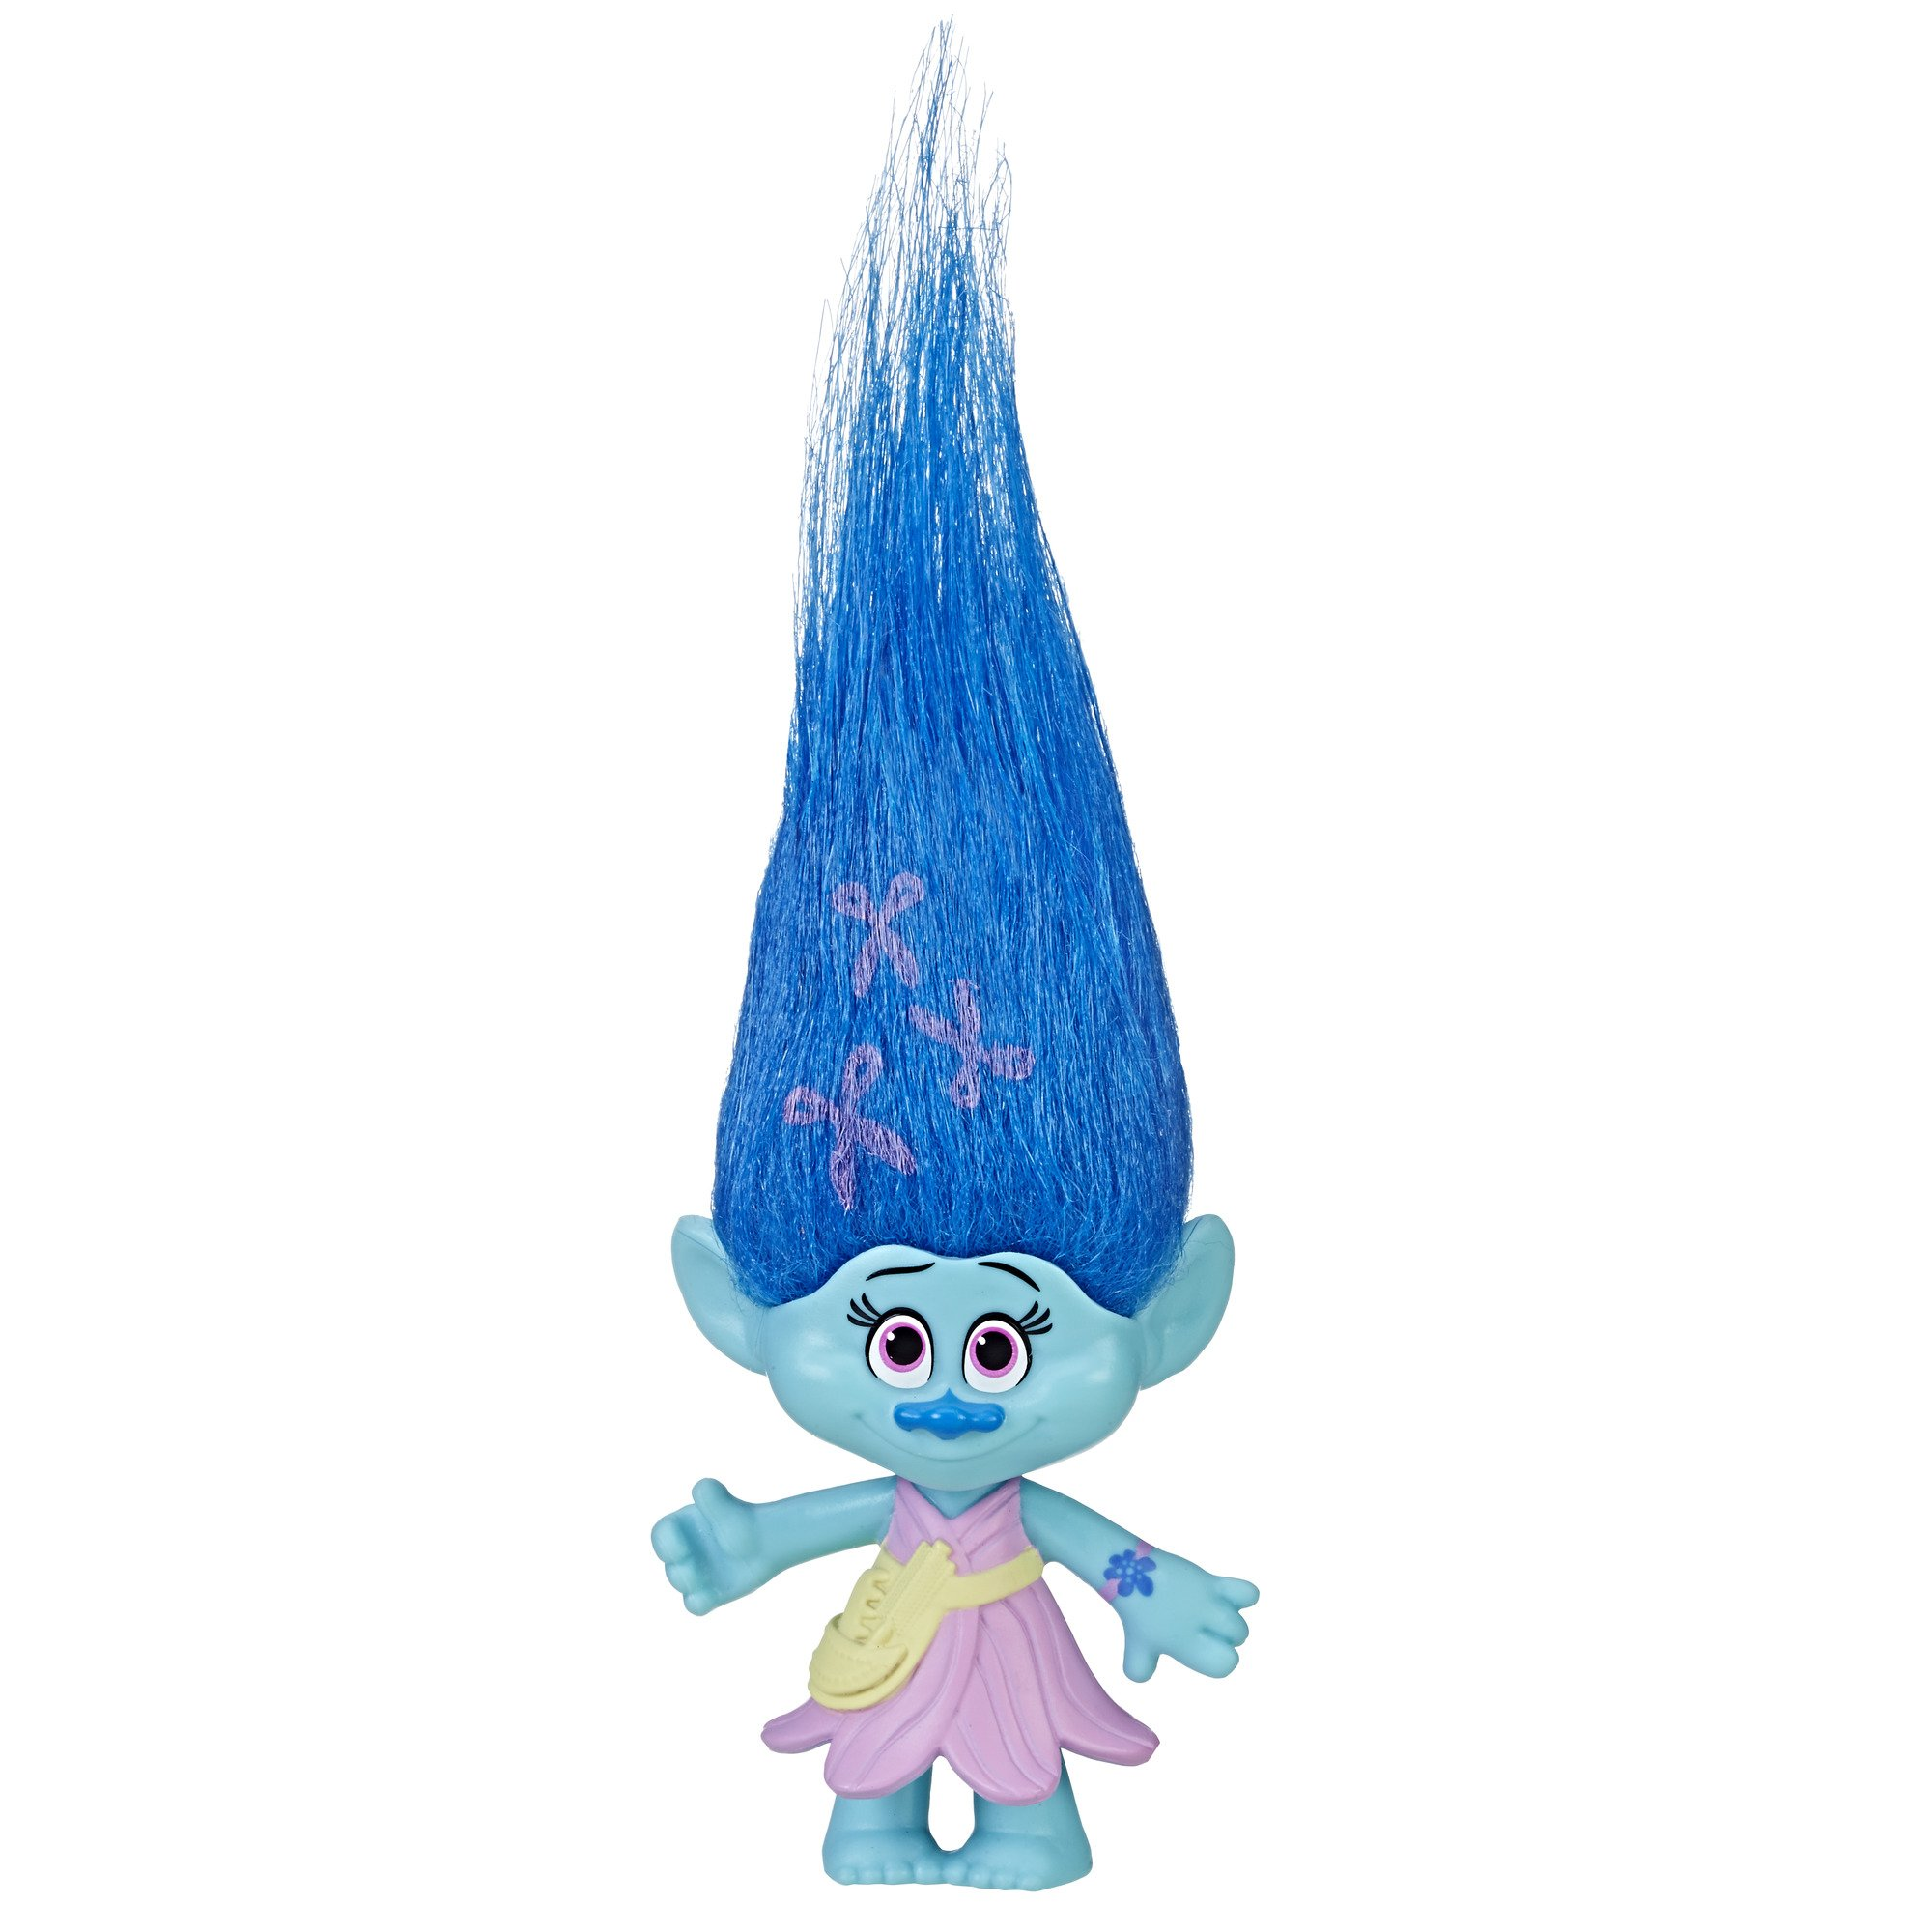 Trolls DreamWorks Maddy Collectible Figure with Printed Hair